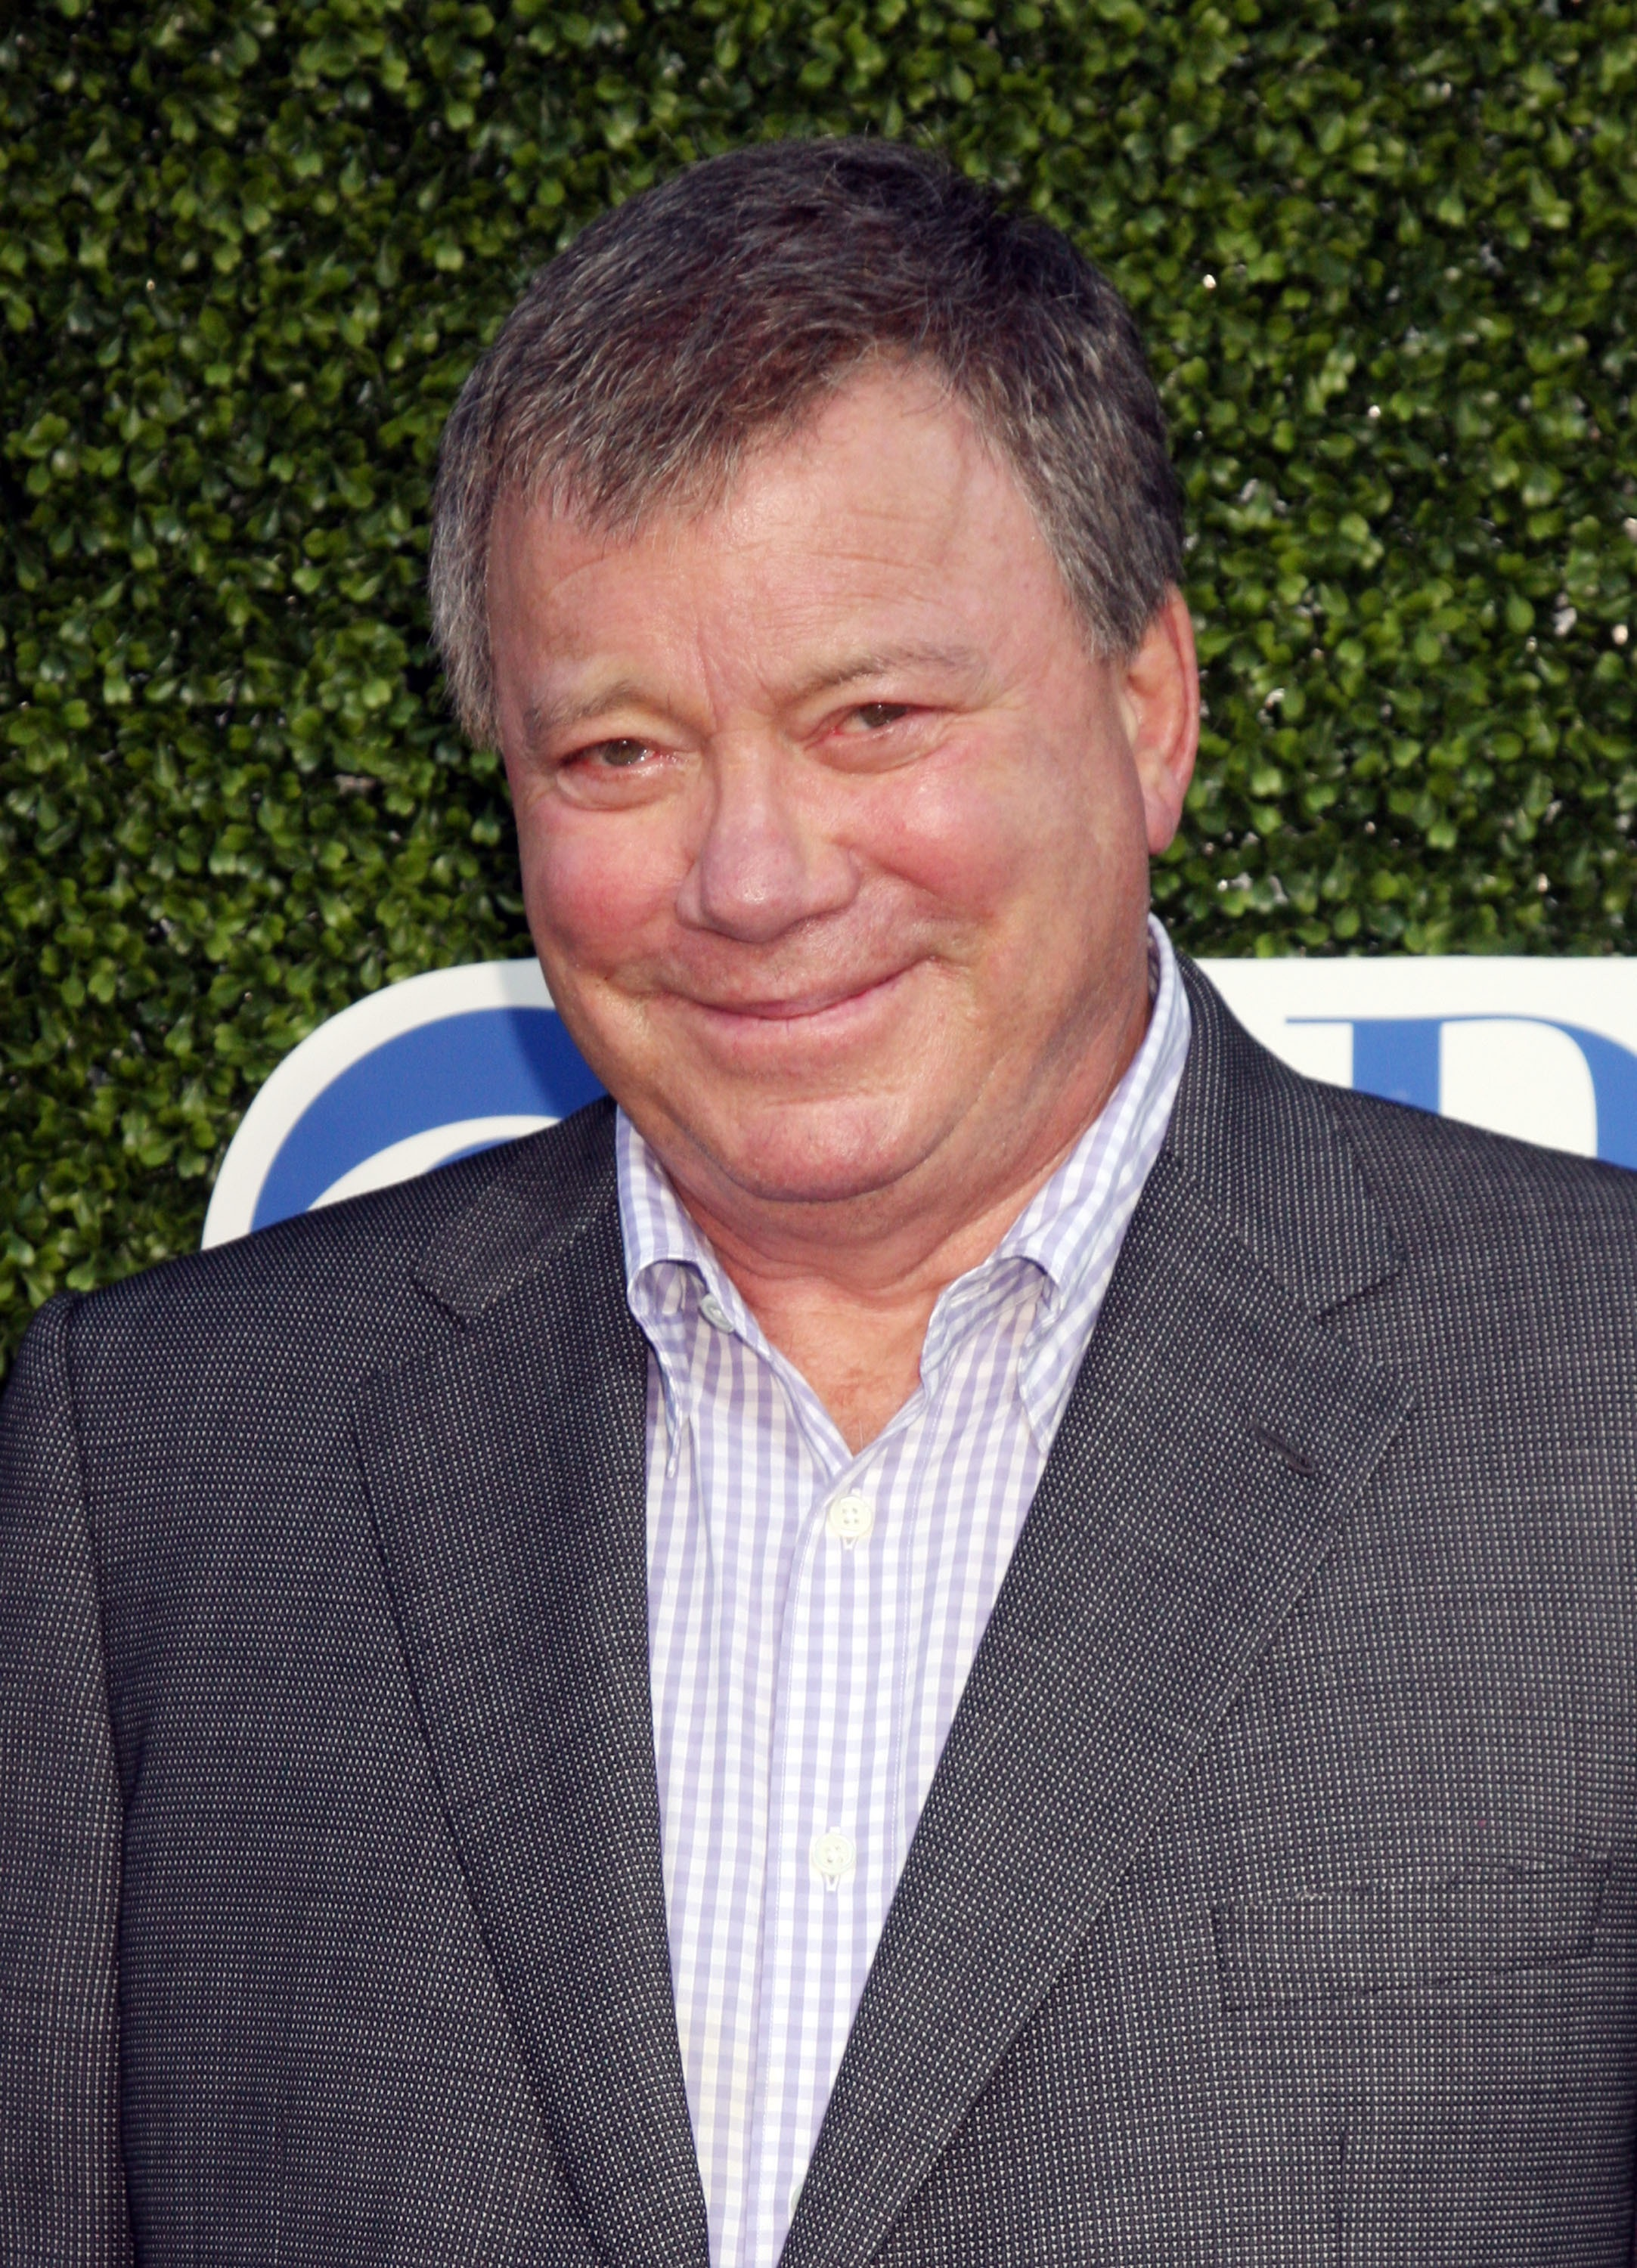 William Shatner on Broadway